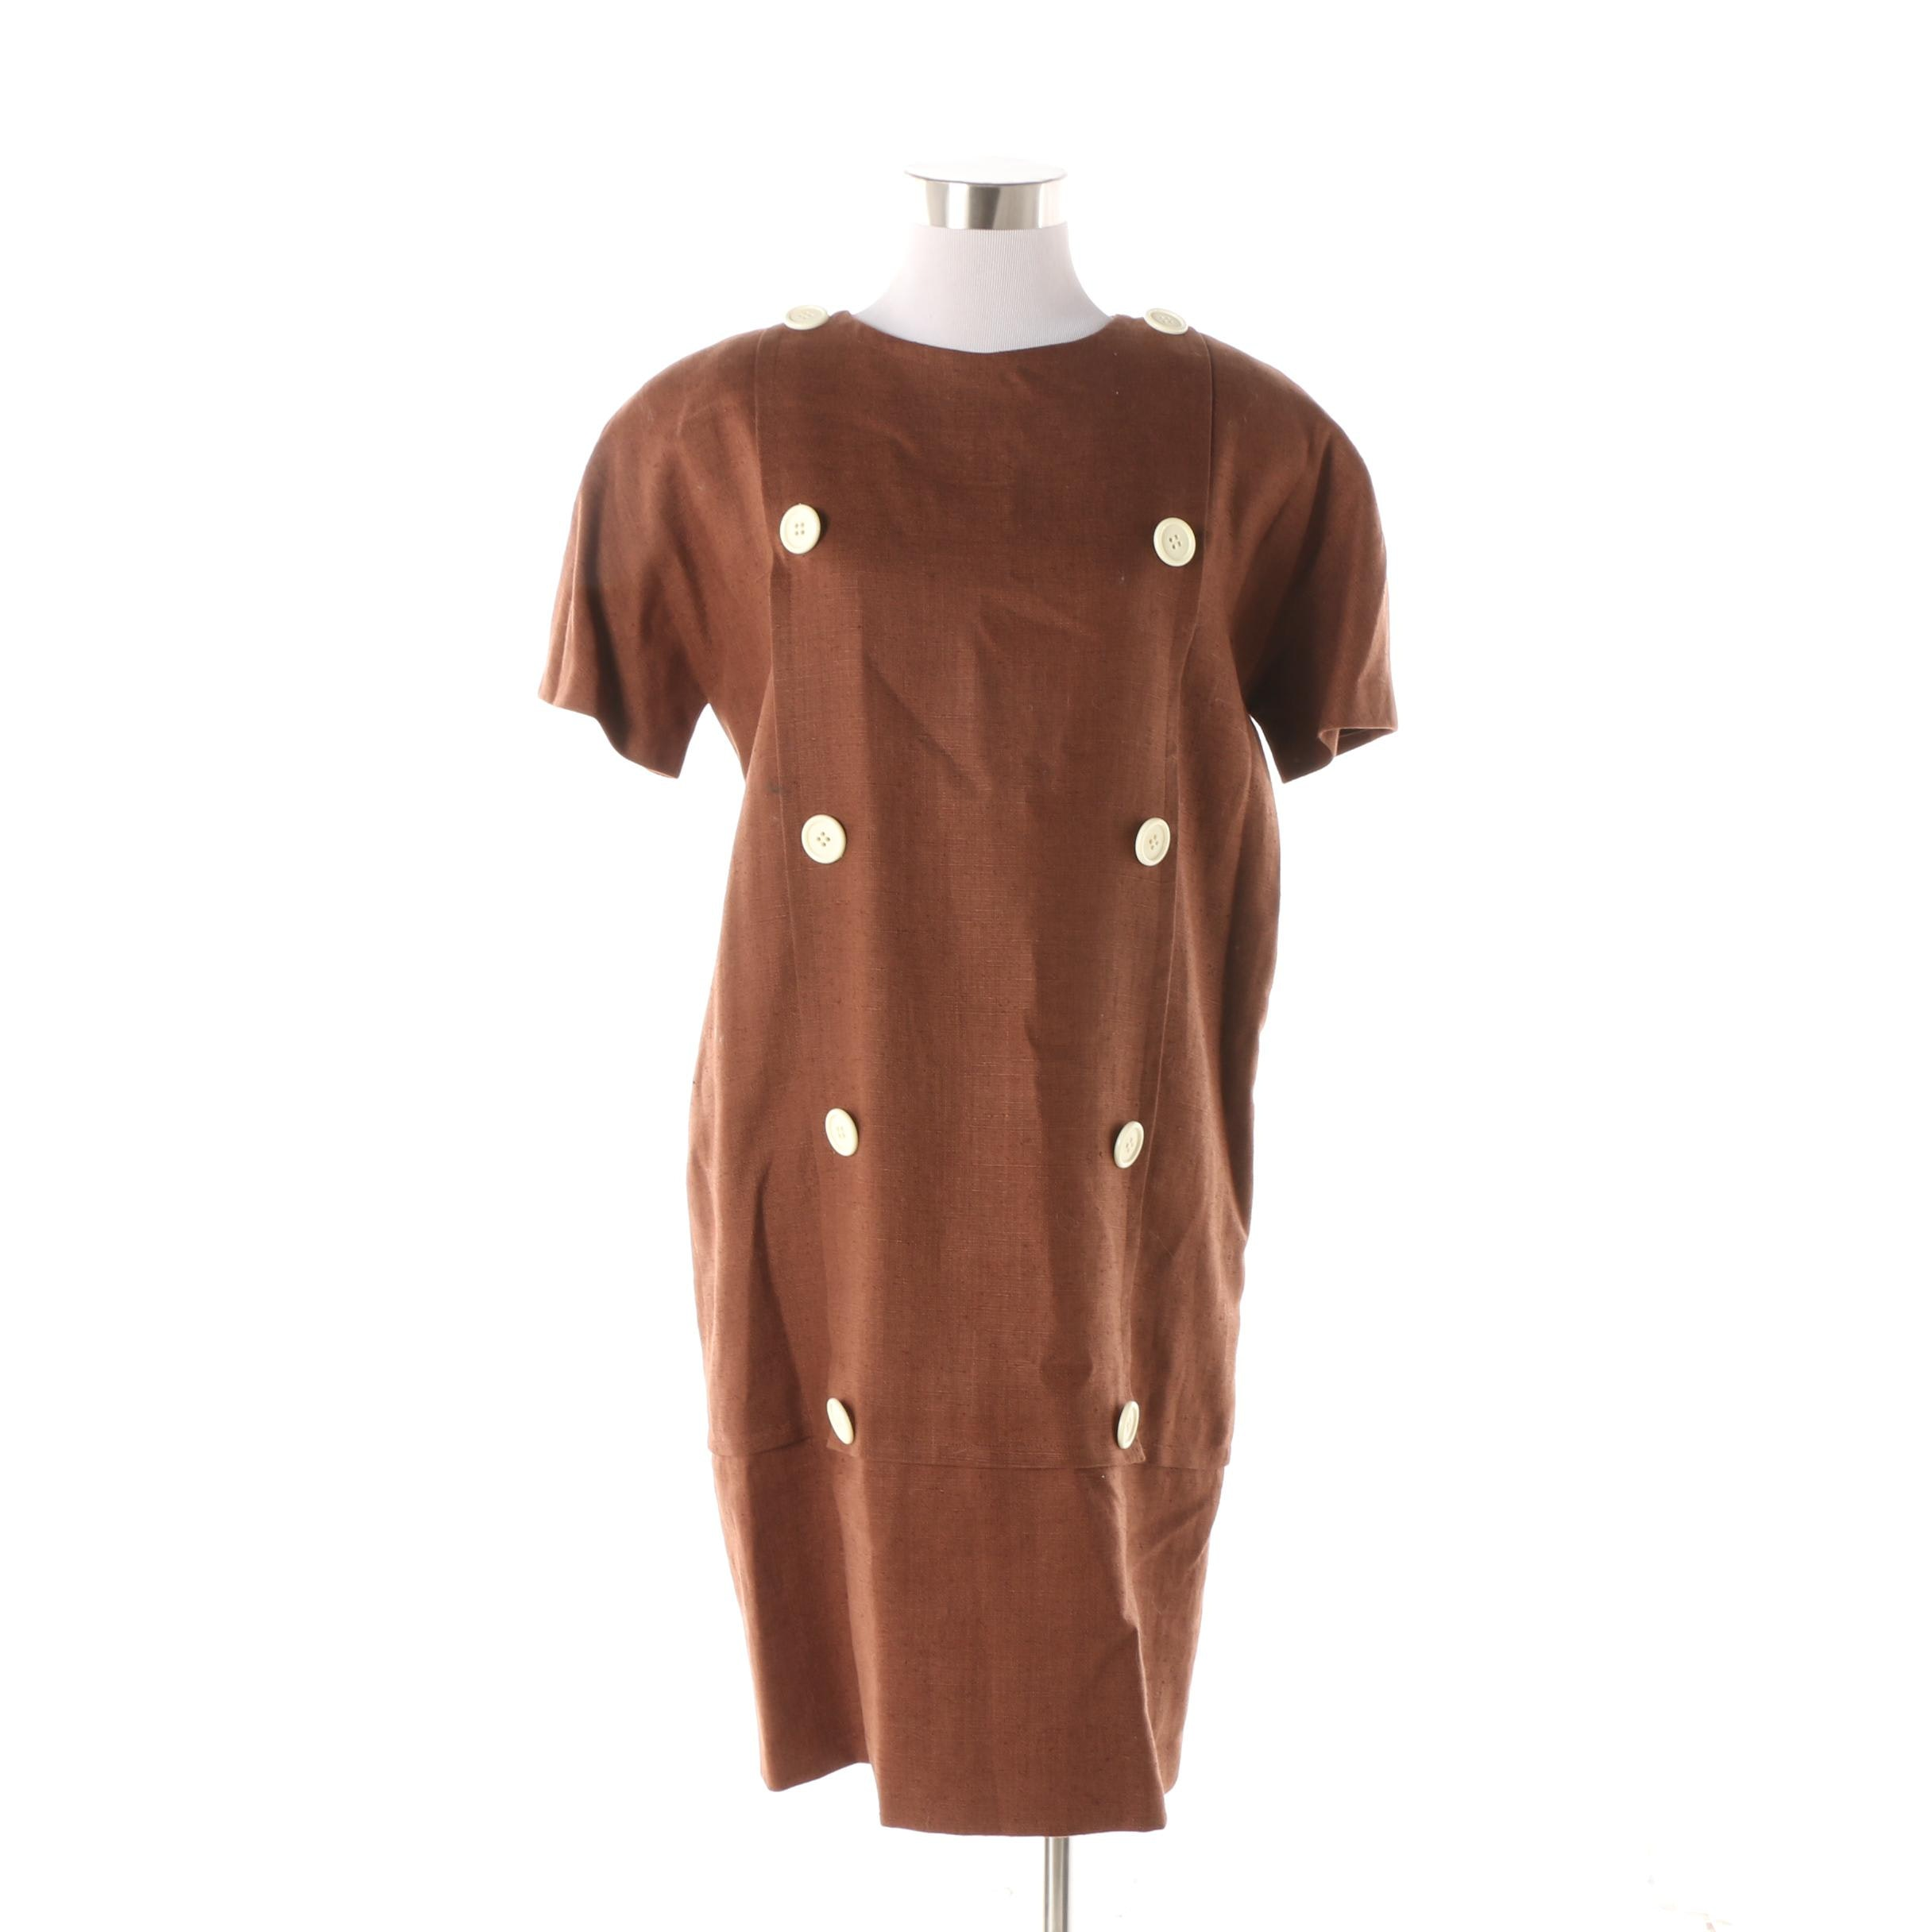 Women's 1990s Vintage Oscar de la Renta Chocolate Brown Wool Blend Shift Dress